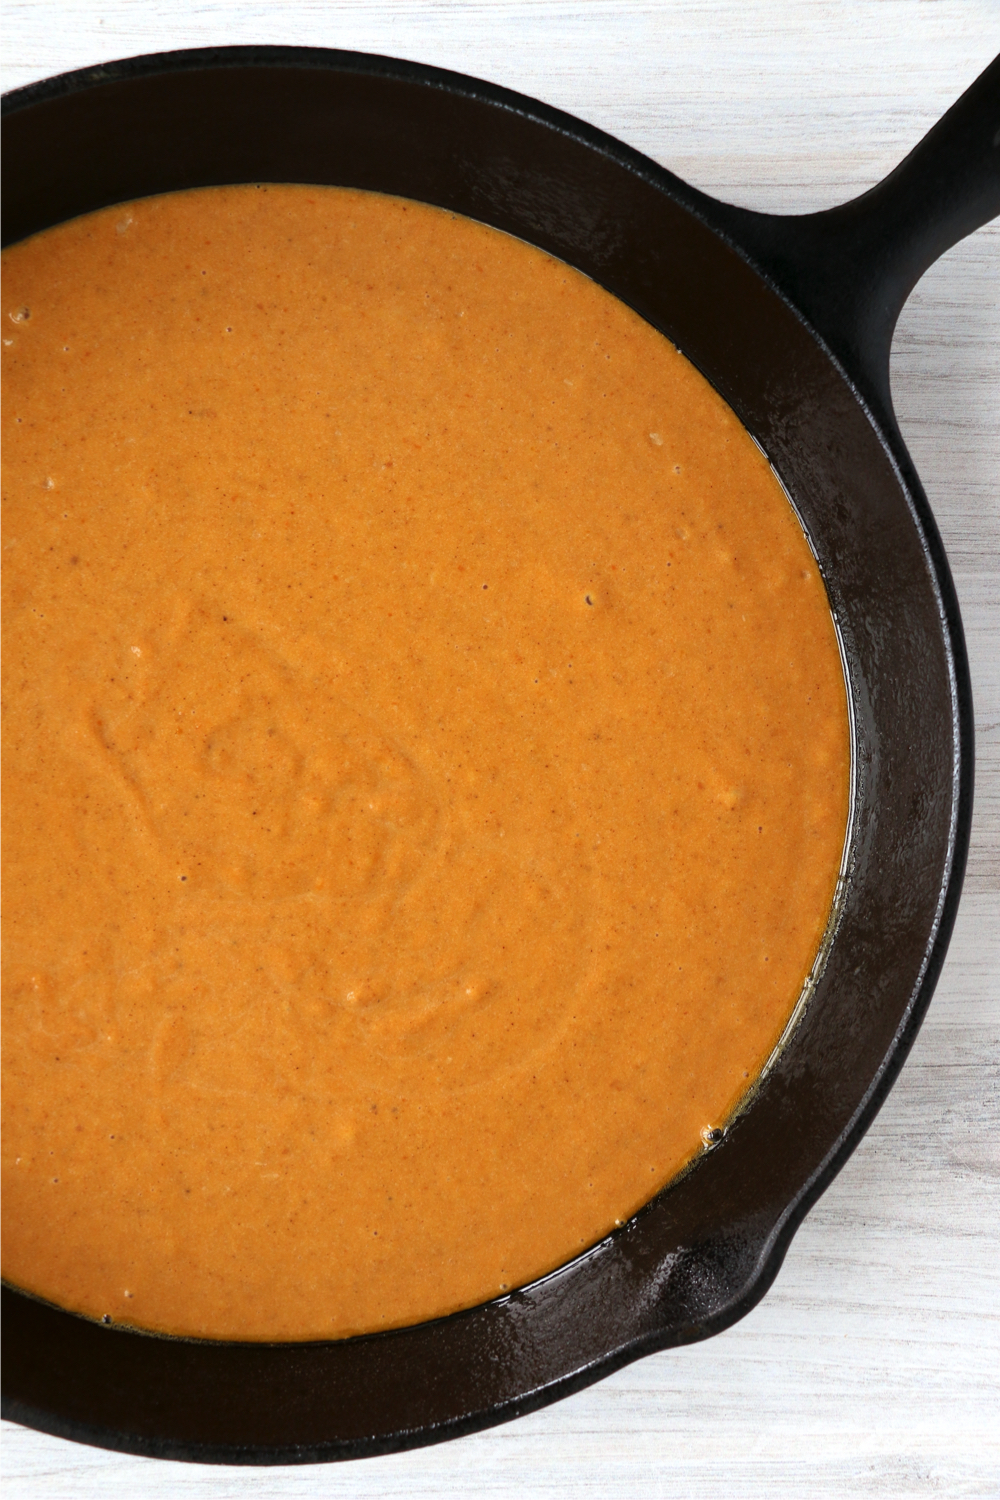 skillet filled with pumpkin mixture